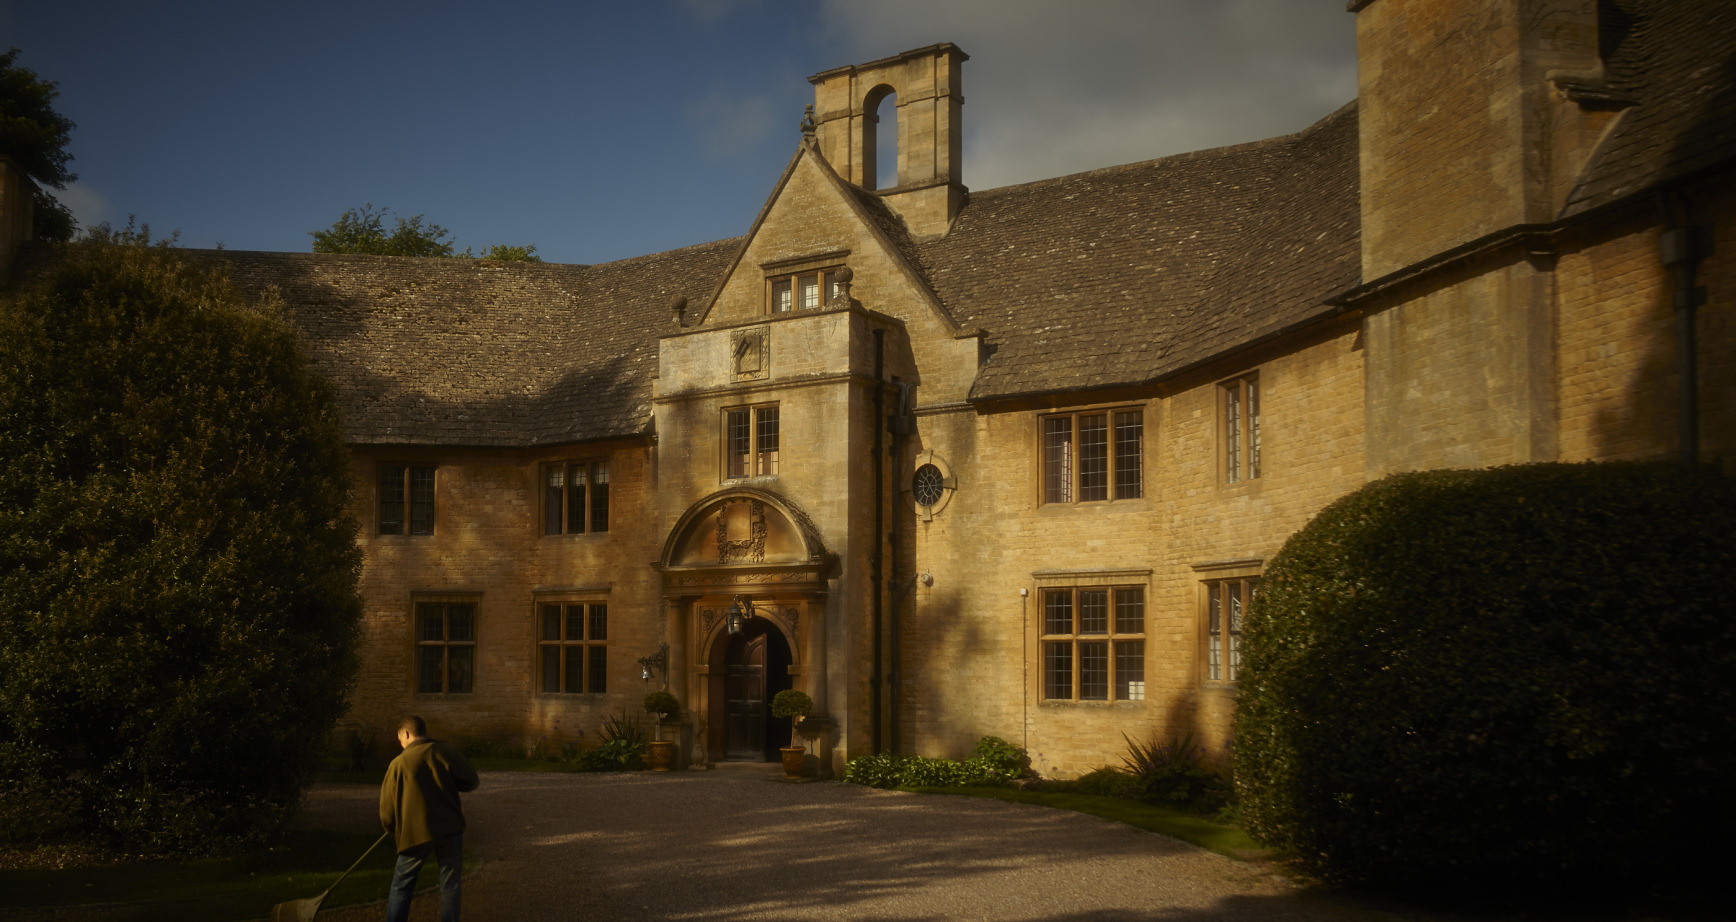 Foxhill Manor - Broadway, Gloucestershire WR12 7LJ - 01386 852711   ShowMeLocal.com